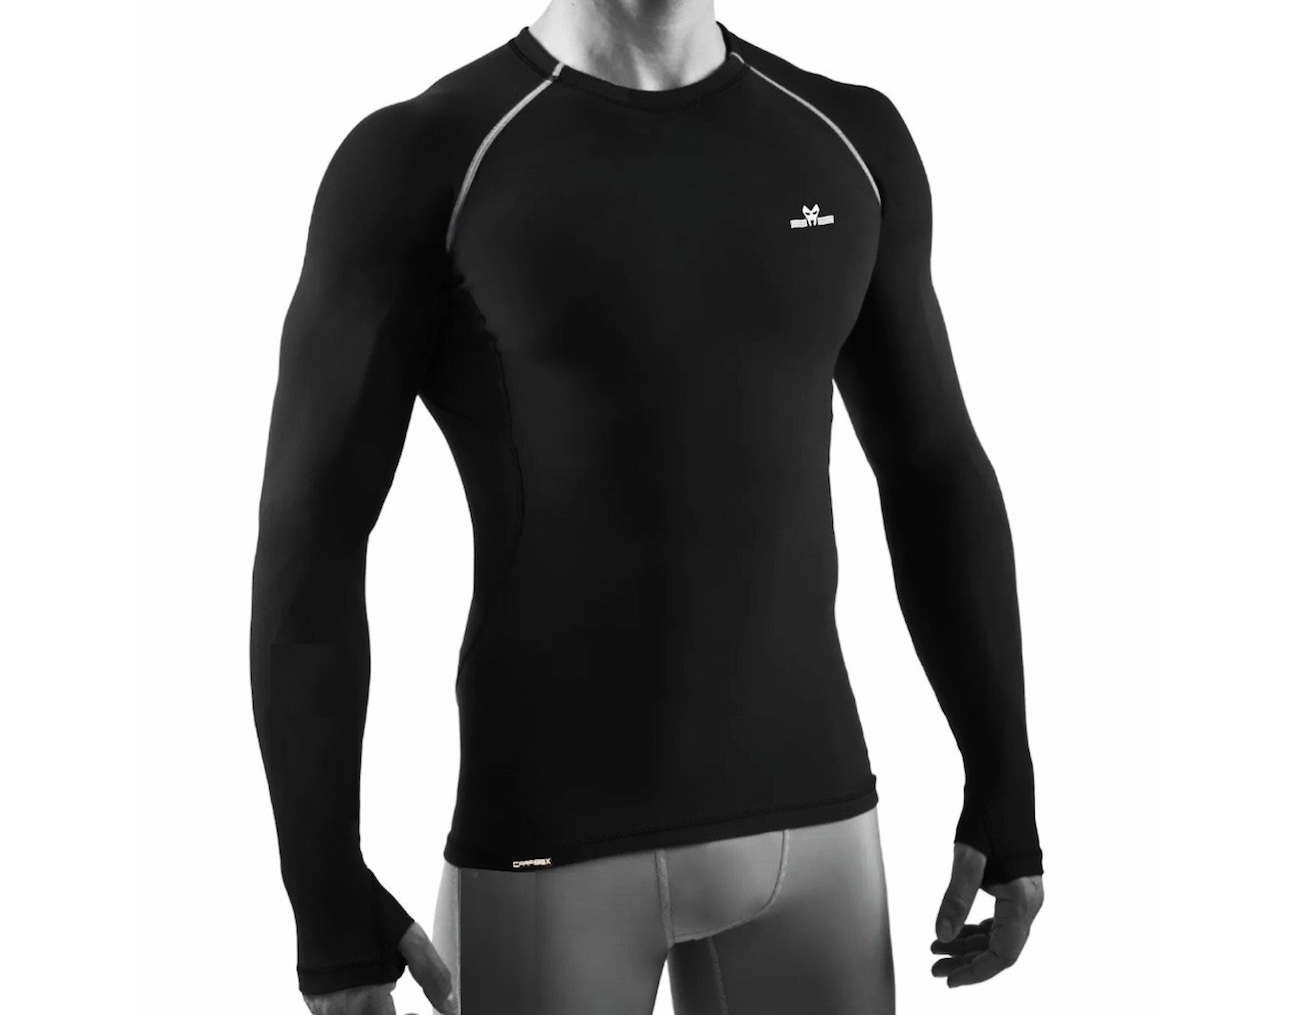 CARFIBEX Technical Base Layer